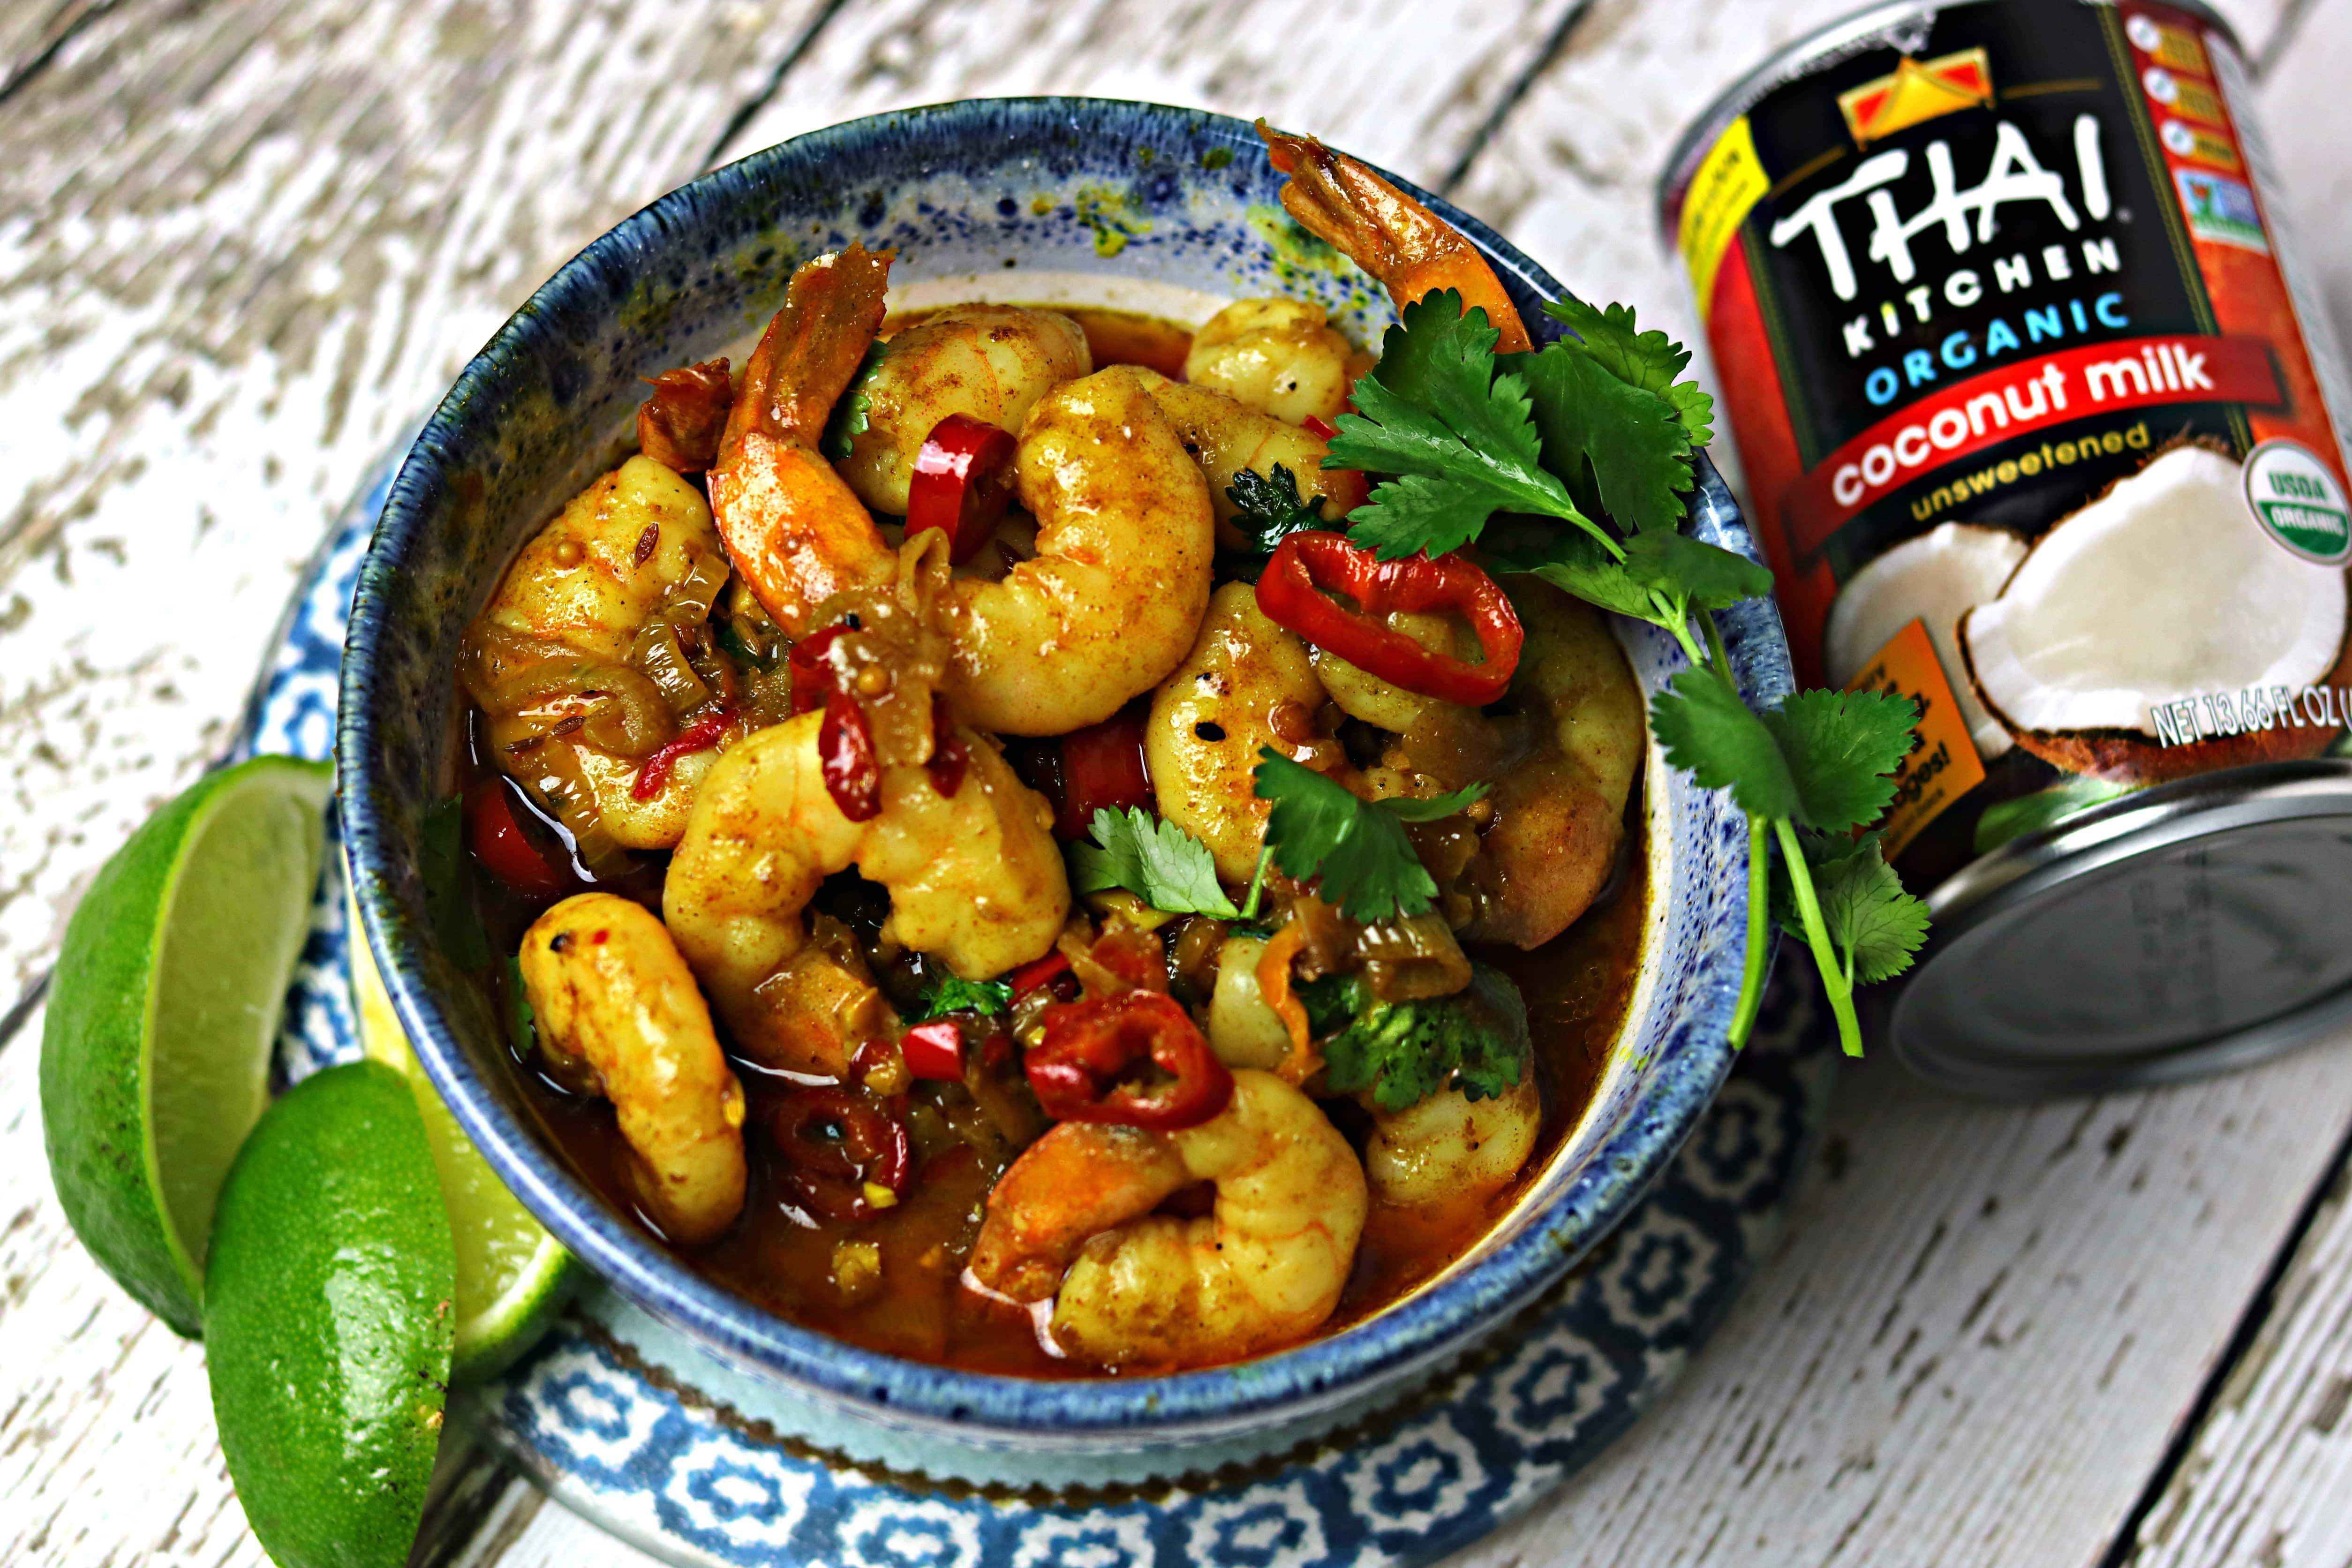 A bowl of Indian Shrimp Curry, next to a can of Thai Kitchen Organic Coconut Milk